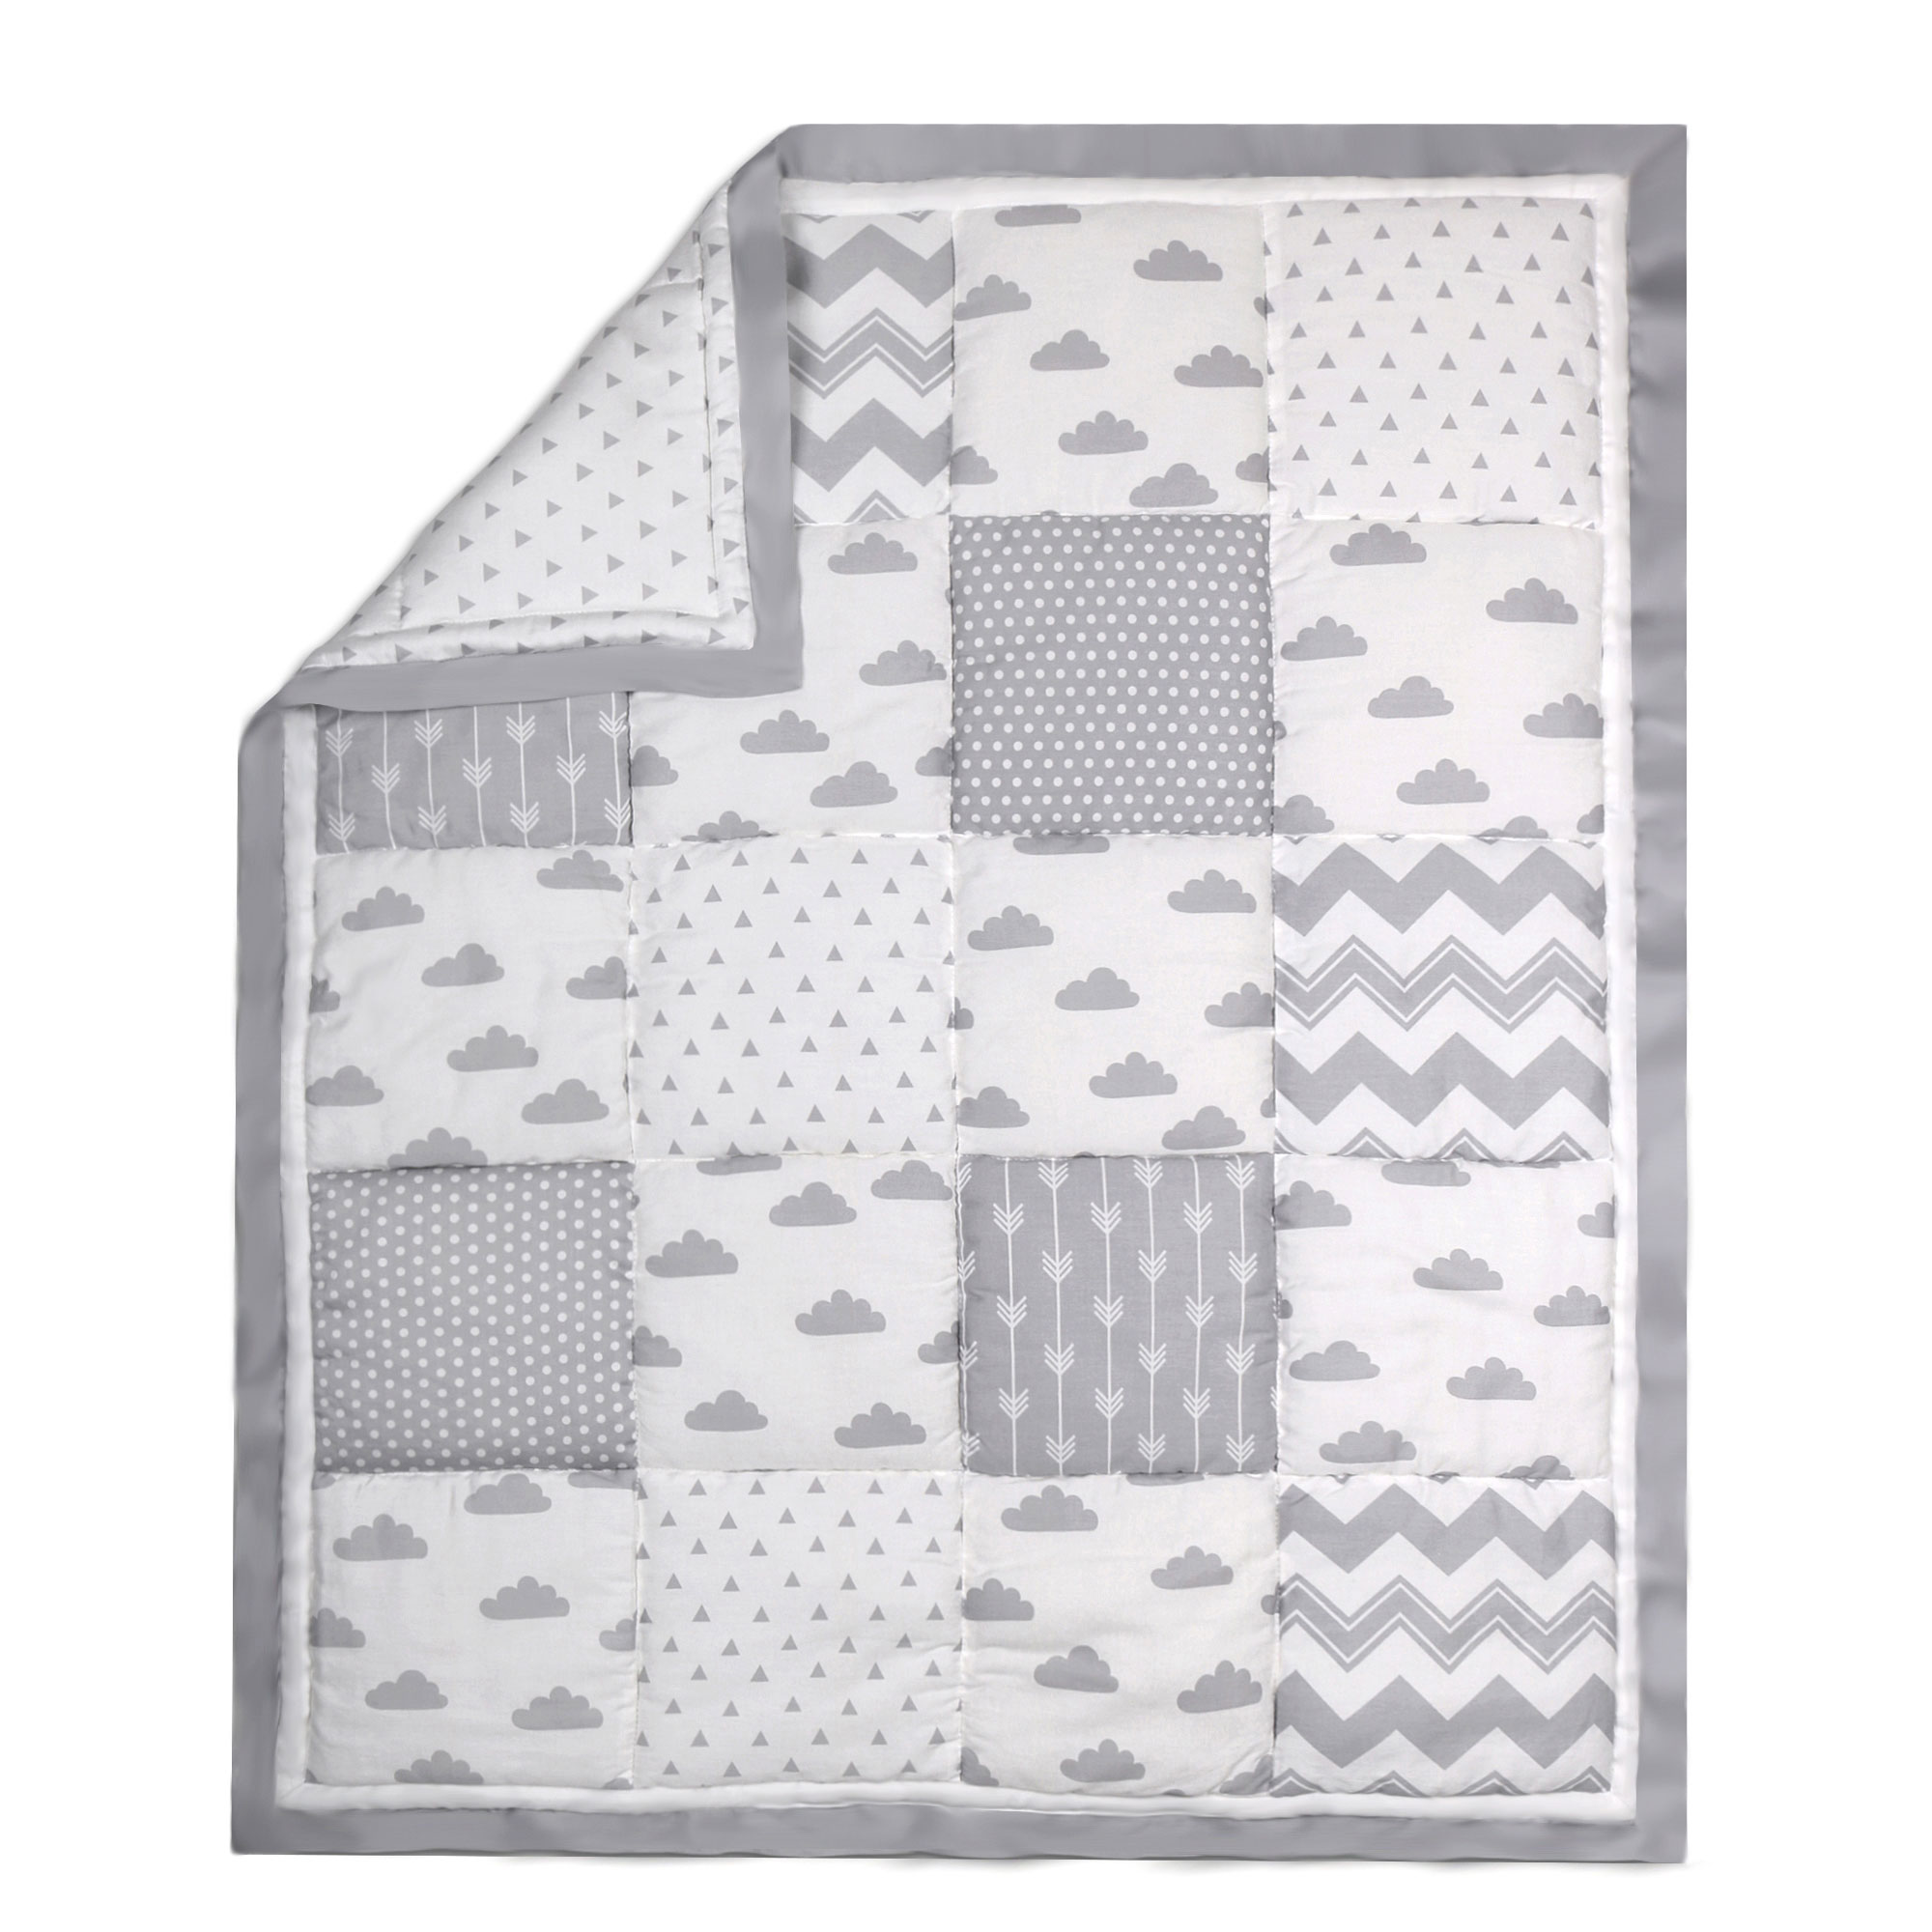 The Peanut Shell Baby Crib Quilt - Grey Geometric, Dot and Zig Zag Patchwork - 100% Cotton Sateen Fabrics, 44 by 37 Inches